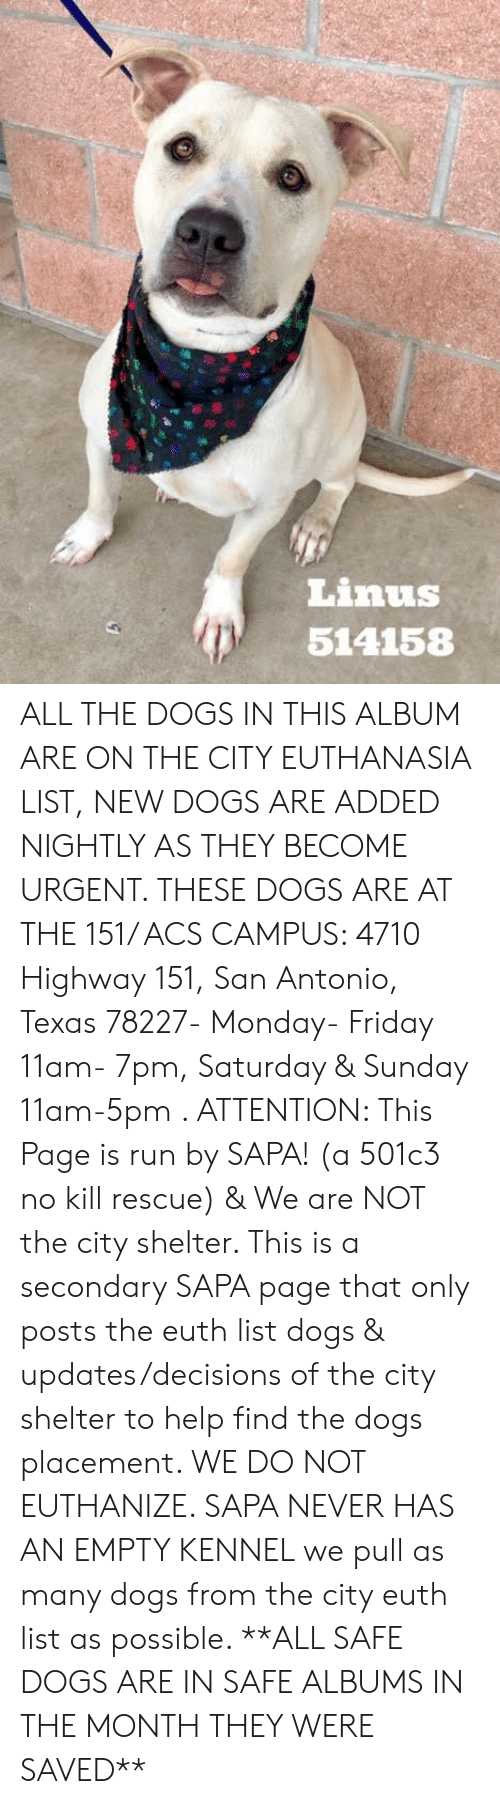 Dogs, Friday, and Memes: Linus  514158 ALL THE DOGS IN THIS ALBUM ARE ON THE CITY EUTHANASIA LIST, NEW DOGS ARE ADDED NIGHTLY AS THEY BECOME URGENT.  THESE DOGS ARE AT THE 151/ ACS CAMPUS: 4710 Highway 151, San Antonio, Texas 78227- Monday- Friday 11am- 7pm, Saturday & Sunday 11am-5pm  .                                                                                                                                                                                                                                                     ATTENTION: This Page is run by SAPA! (a 501c3 no kill rescue) & We are NOT the city shelter. This is a secondary SAPA page that only posts the euth list dogs & updates/decisions of the city shelter to help find the dogs placement. WE DO NOT EUTHANIZE.  SAPA NEVER HAS AN EMPTY KENNEL we pull as many dogs from the city euth list as possible.      **ALL SAFE DOGS ARE IN SAFE ALBUMS IN THE MONTH THEY WERE SAVED**